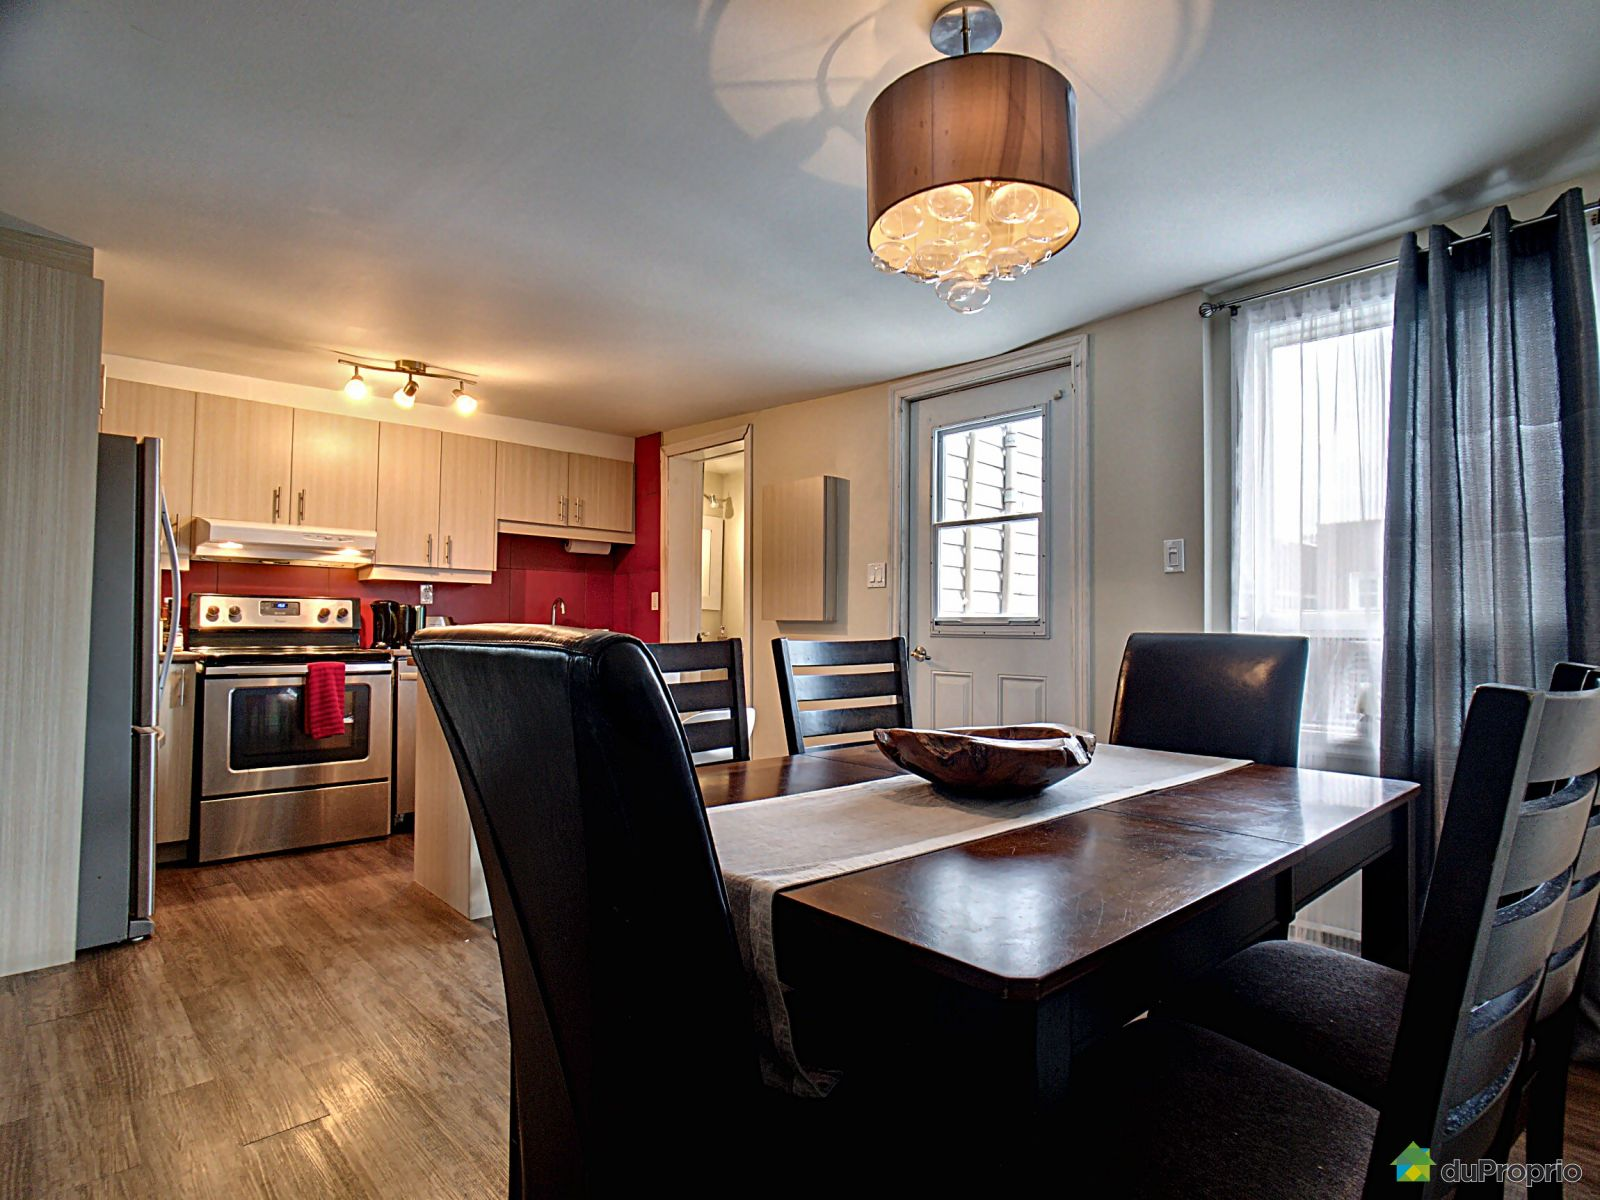 Eat-in Kitchen - 376-380, rue Montmagny, Saint-Sauveur for sale